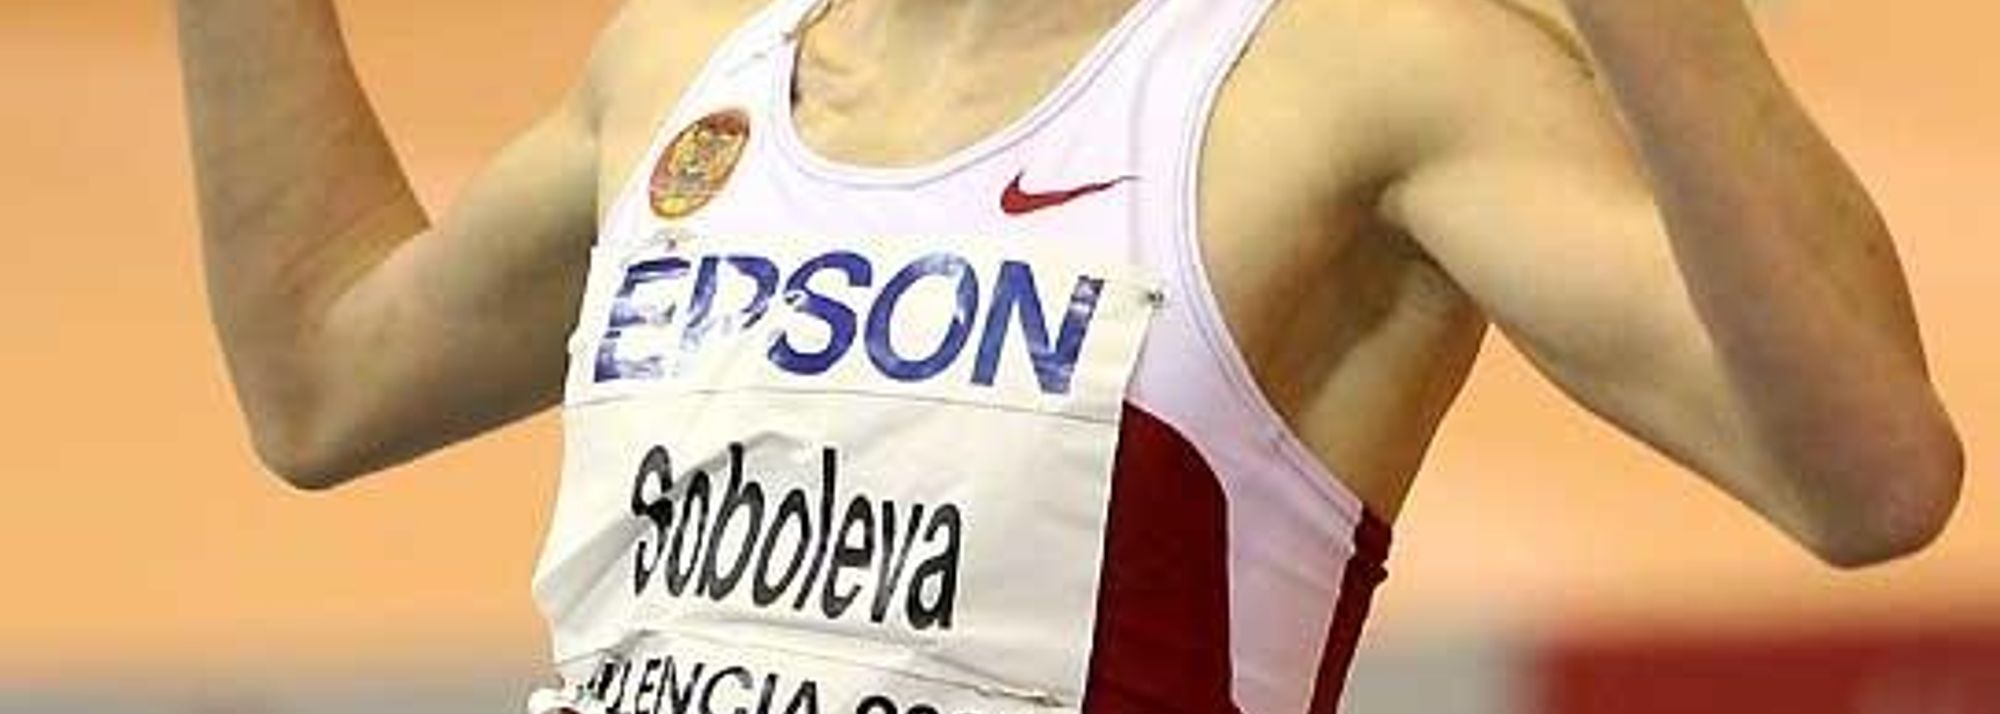 ain - This was always likely to be the race of the championships and it did not disappoint as Yelena Soboleva bettered her own World indoor record mark** by a monster 0.34 posting 3:57.71.<BR>